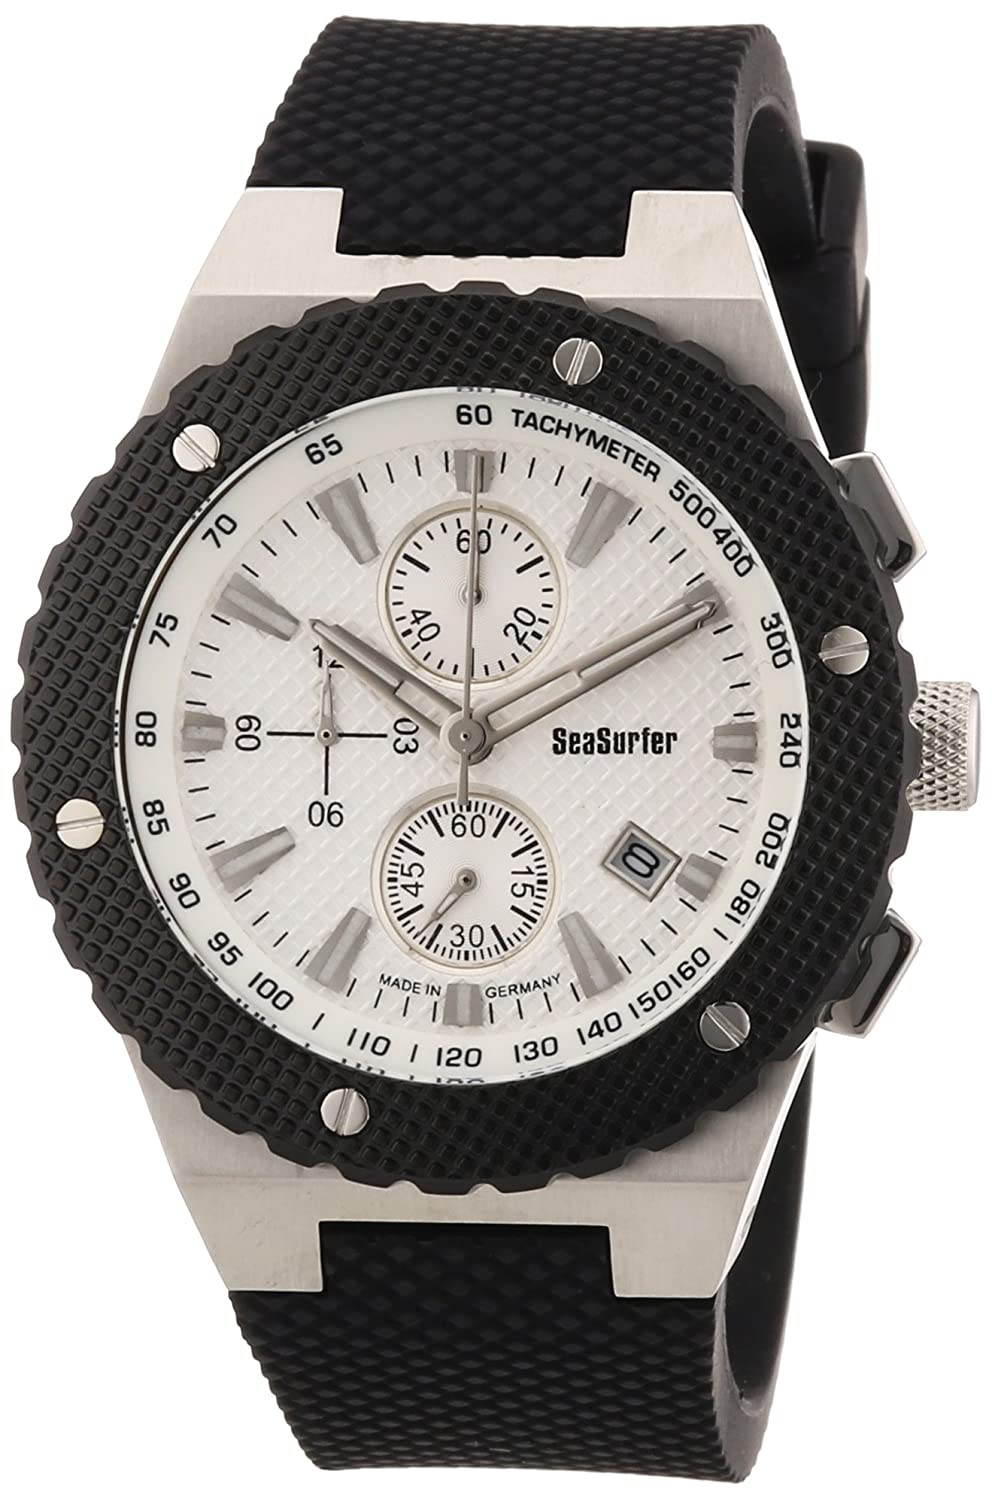 Sea Surfer Herren Chronograph Edelstahl Kautschukband Made in Germany 1562422WS